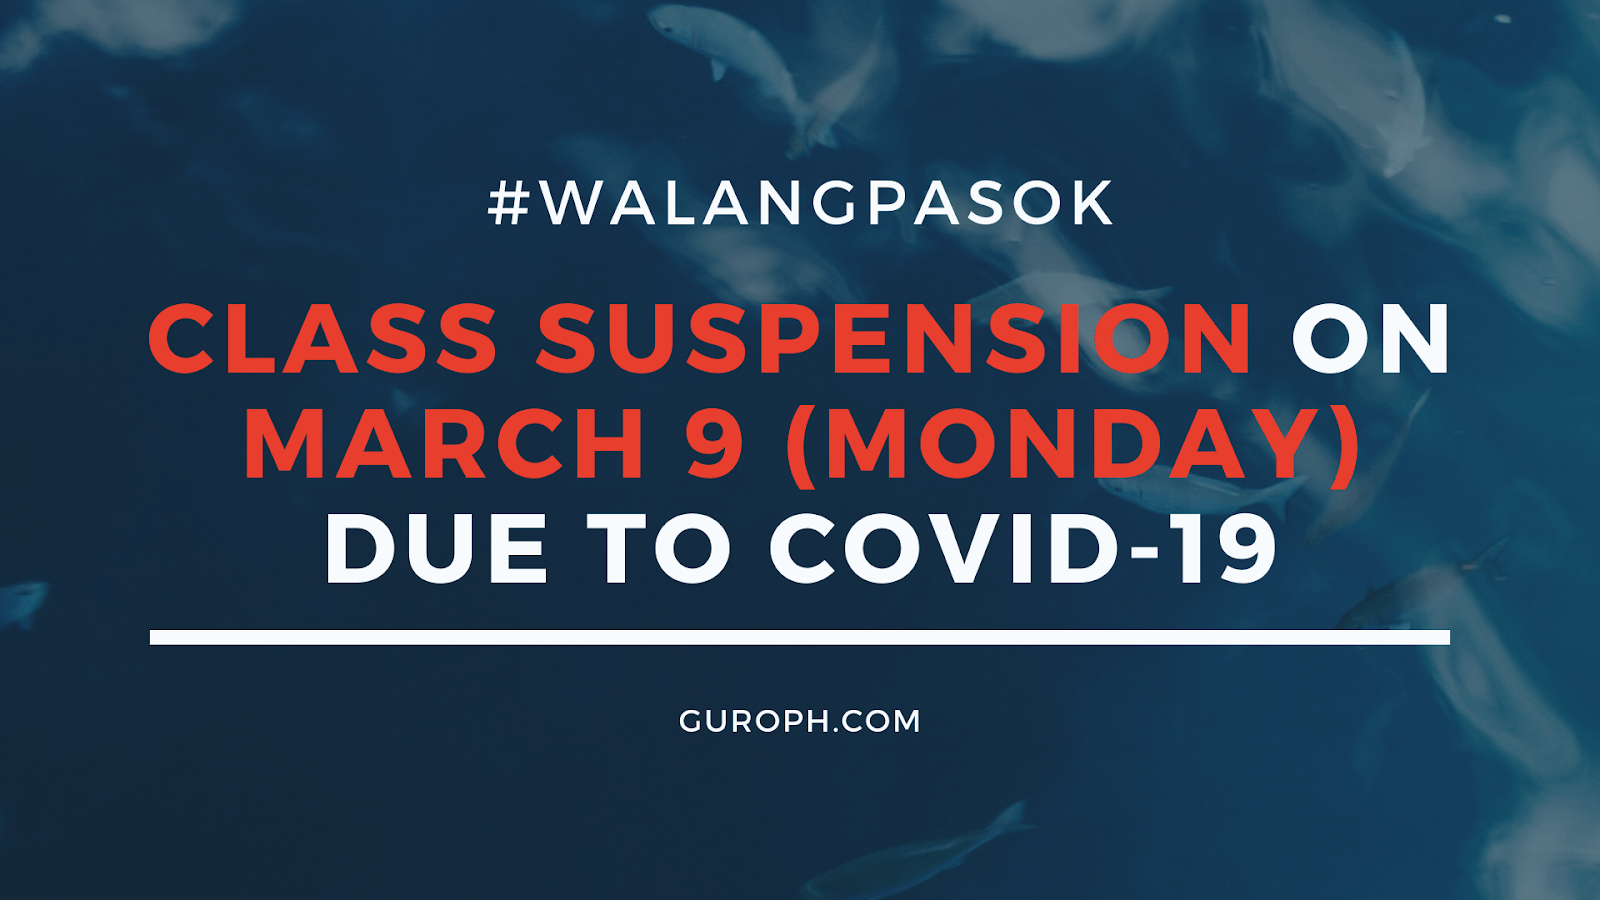 Walang Pasok cancels classes due to COVID-19, pandemic